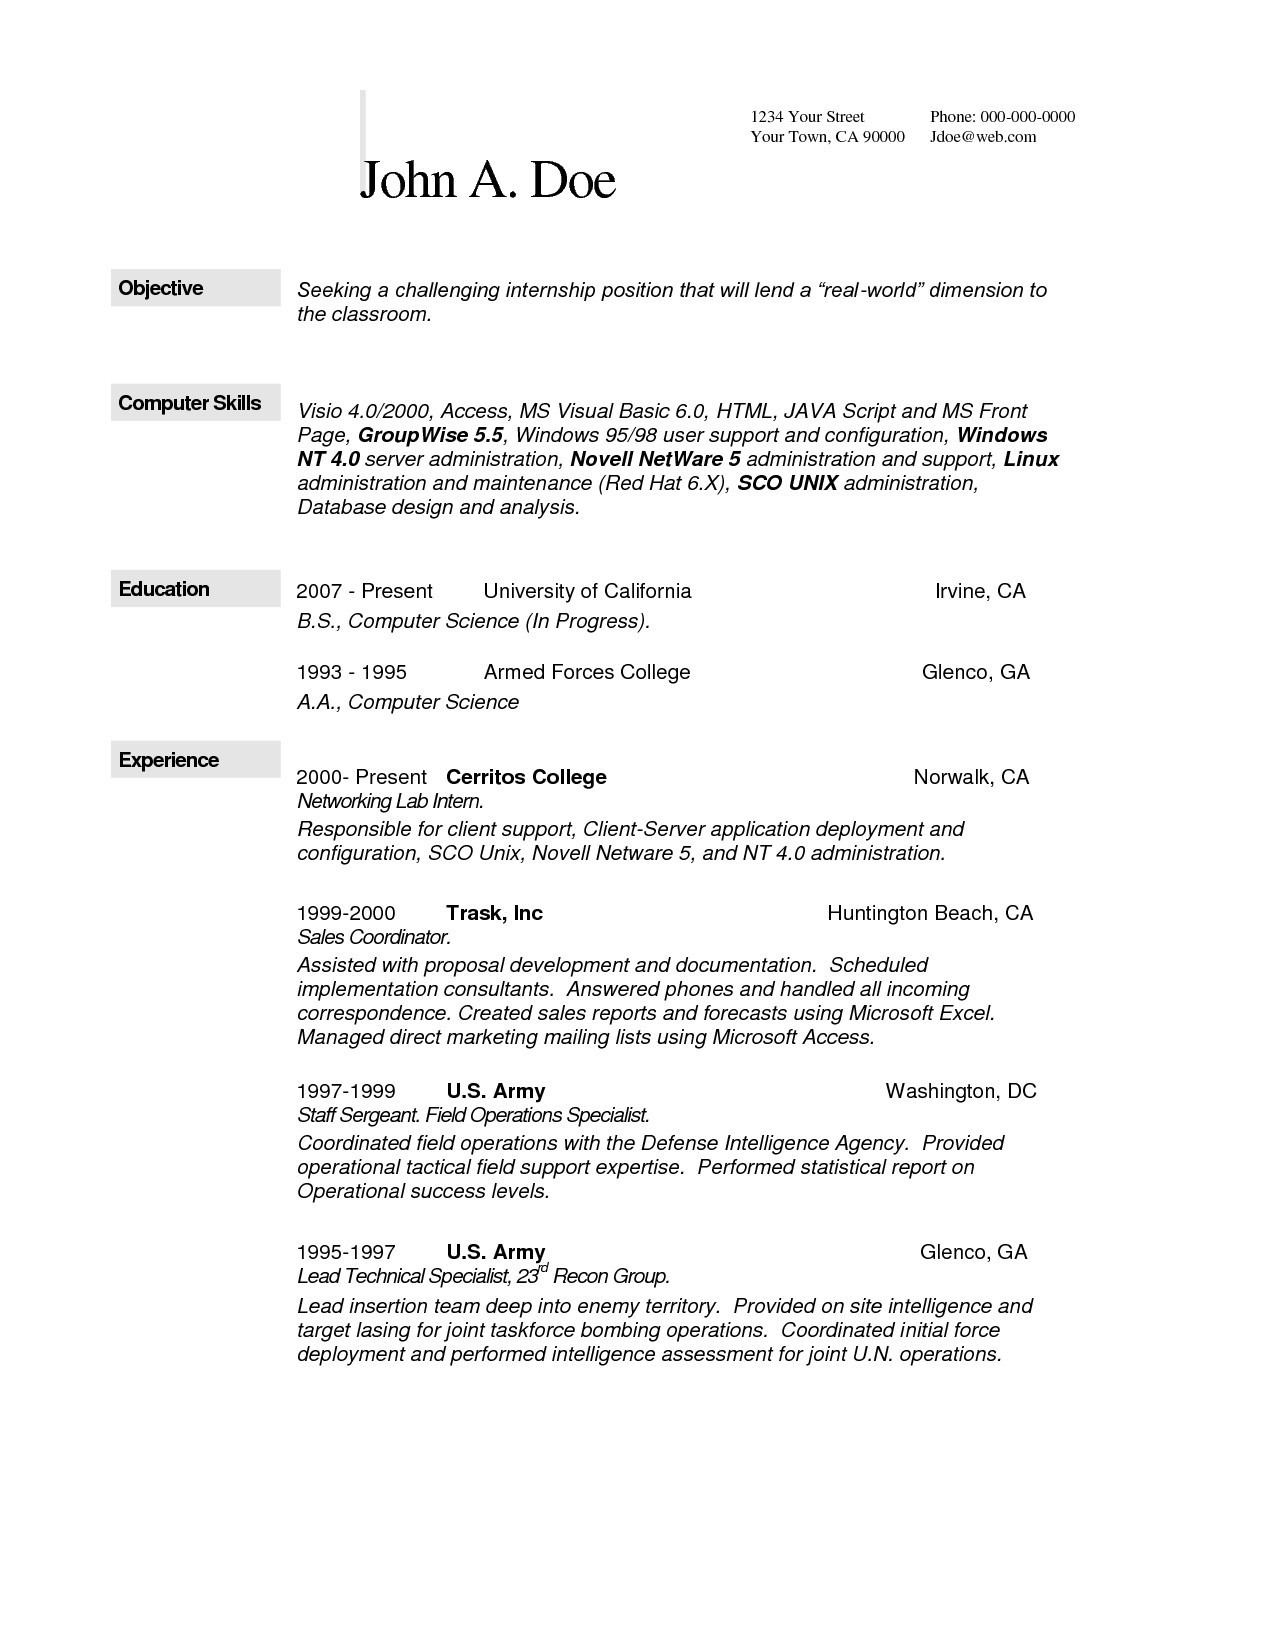 Resume Template for Scientist - Awesome Omputer Science Resume Example